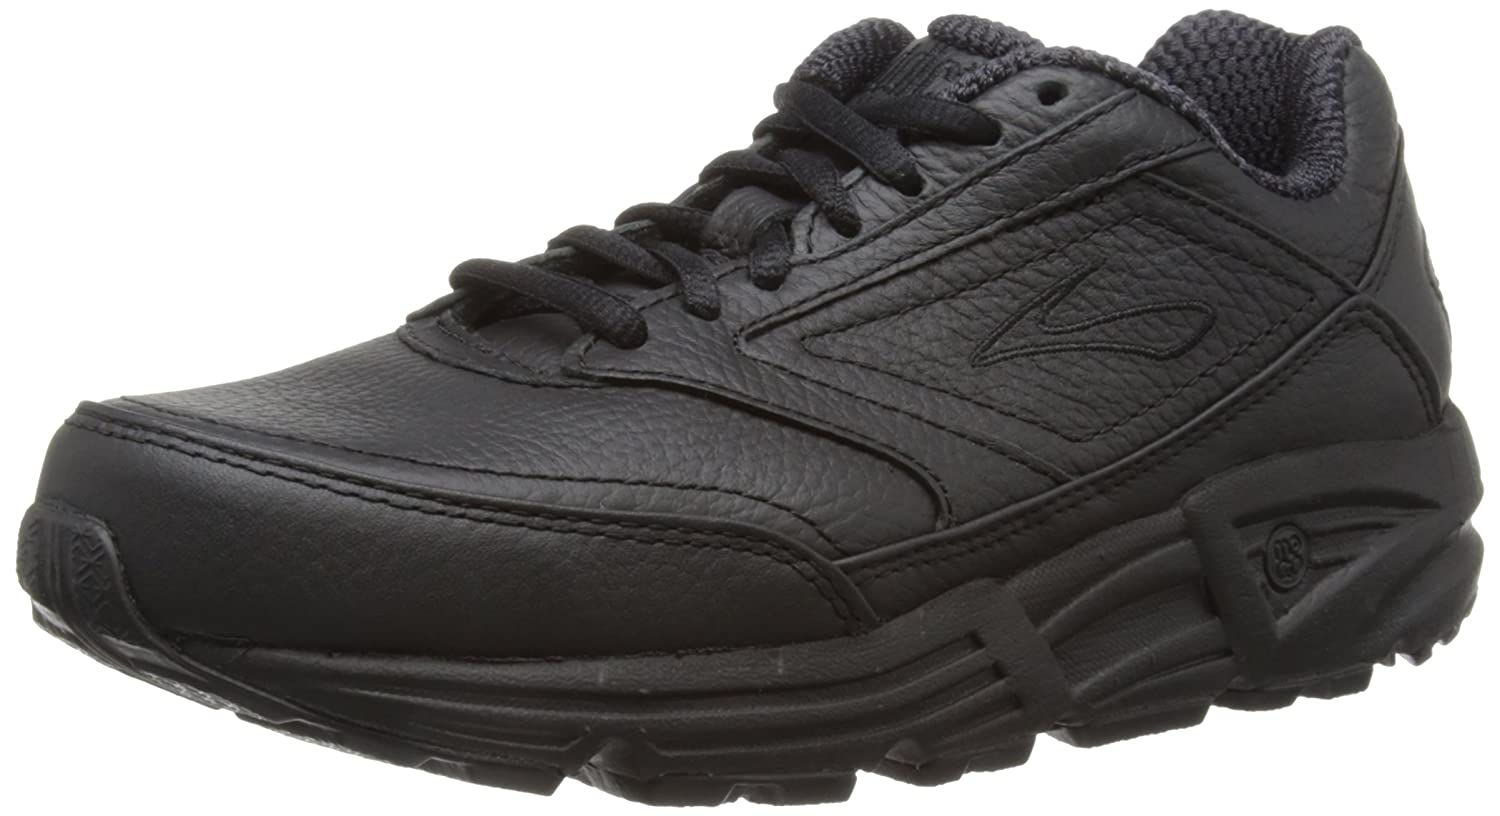 Brooks Women's Addiction Walker Walking Shoes B0012I94BK 8 EE|Black